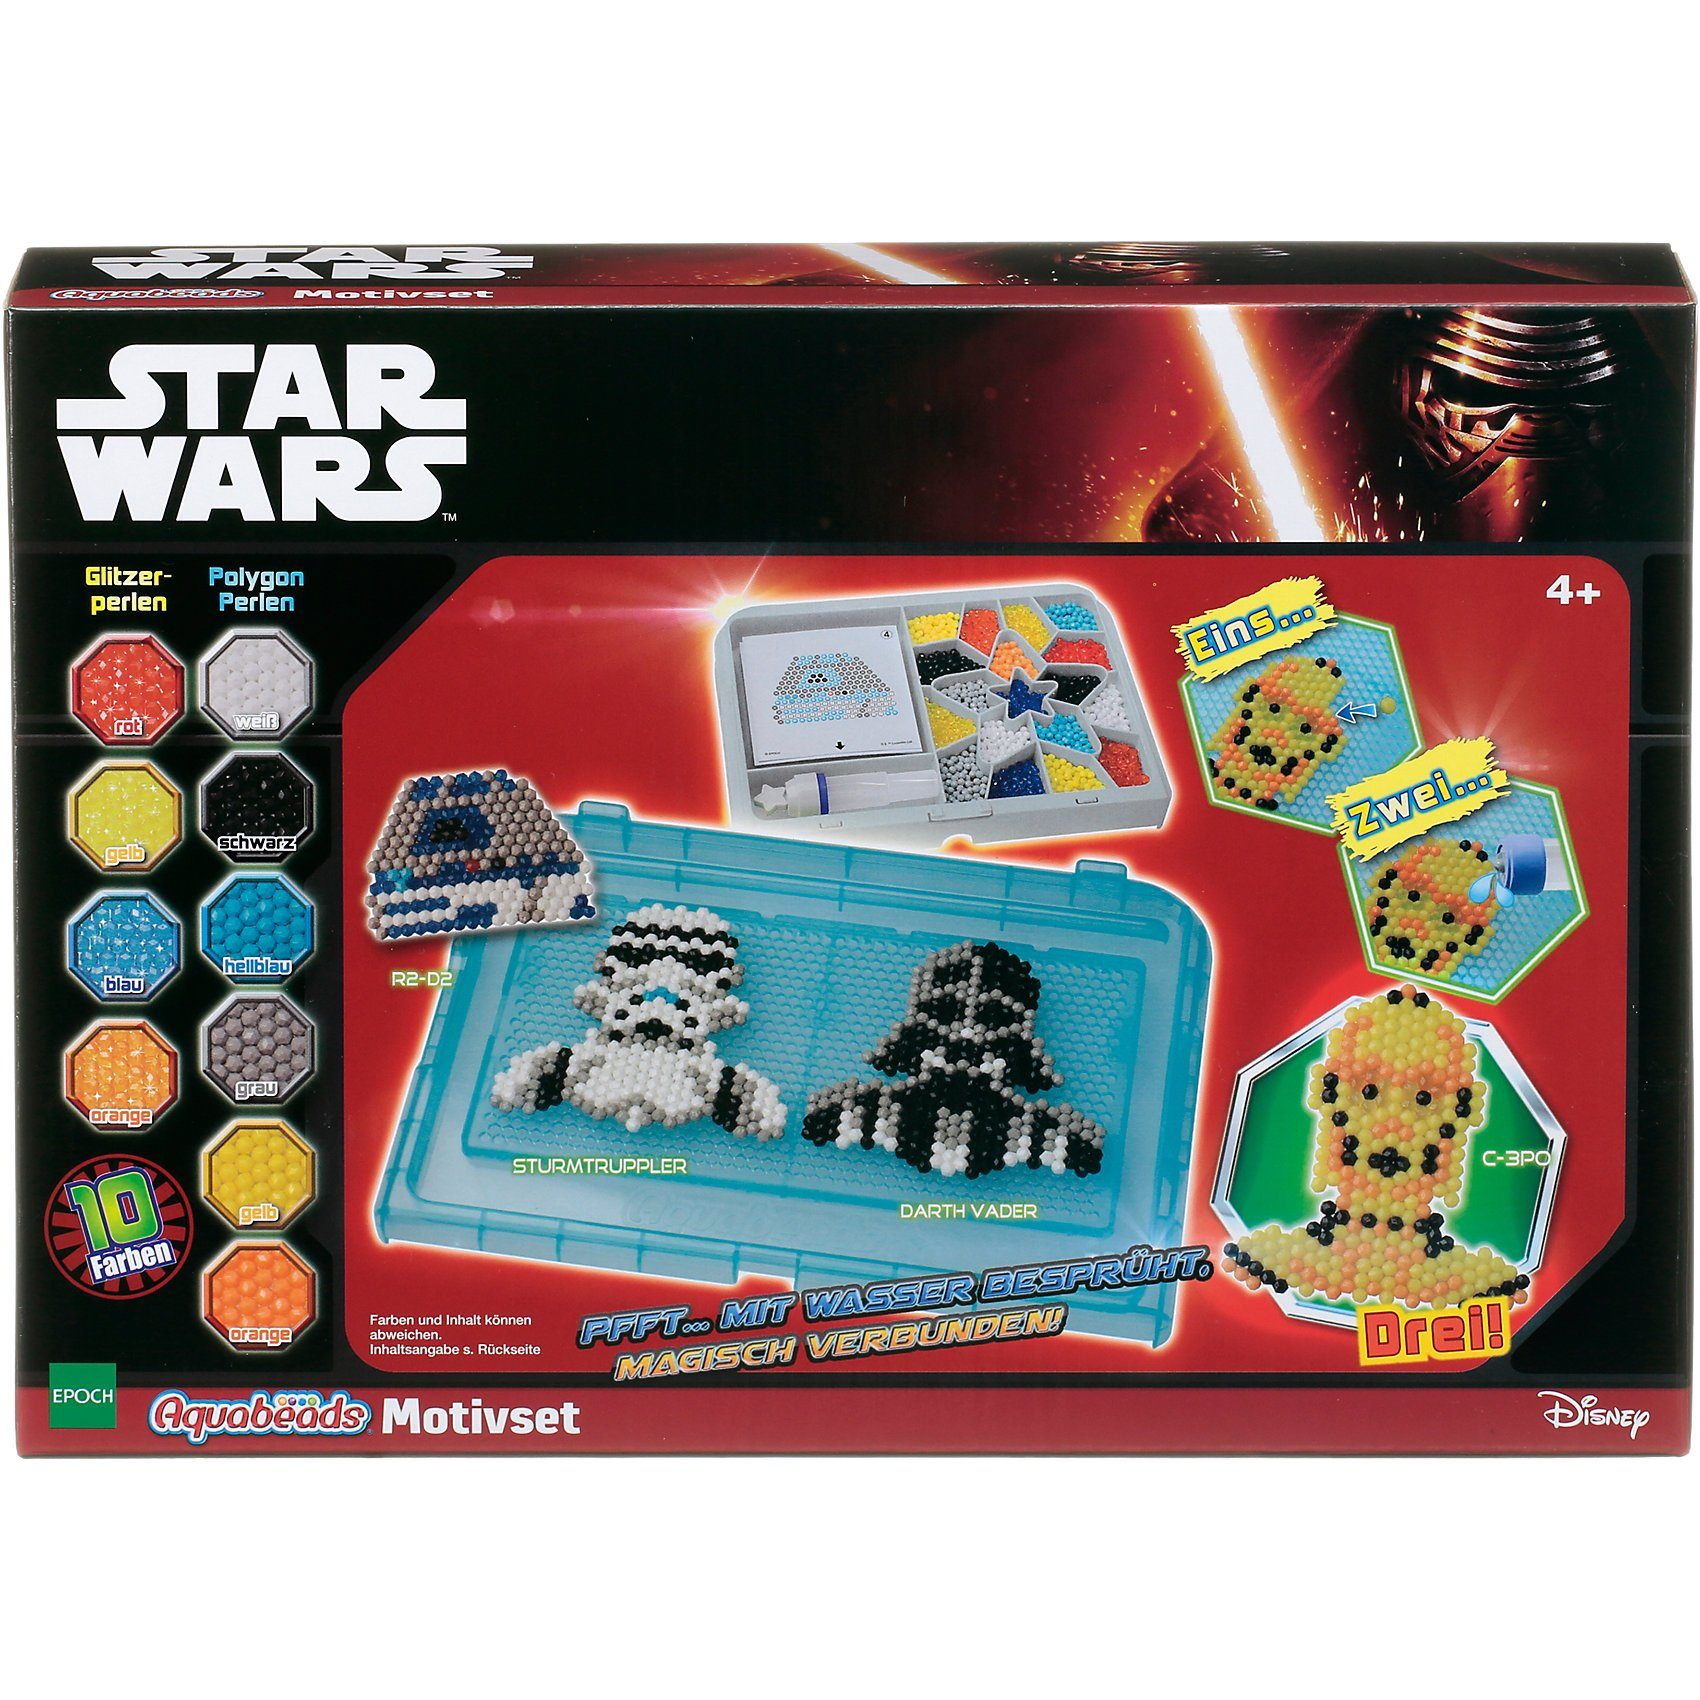 Epoch Traumwiesen Aquabeads Star Wars Motivset